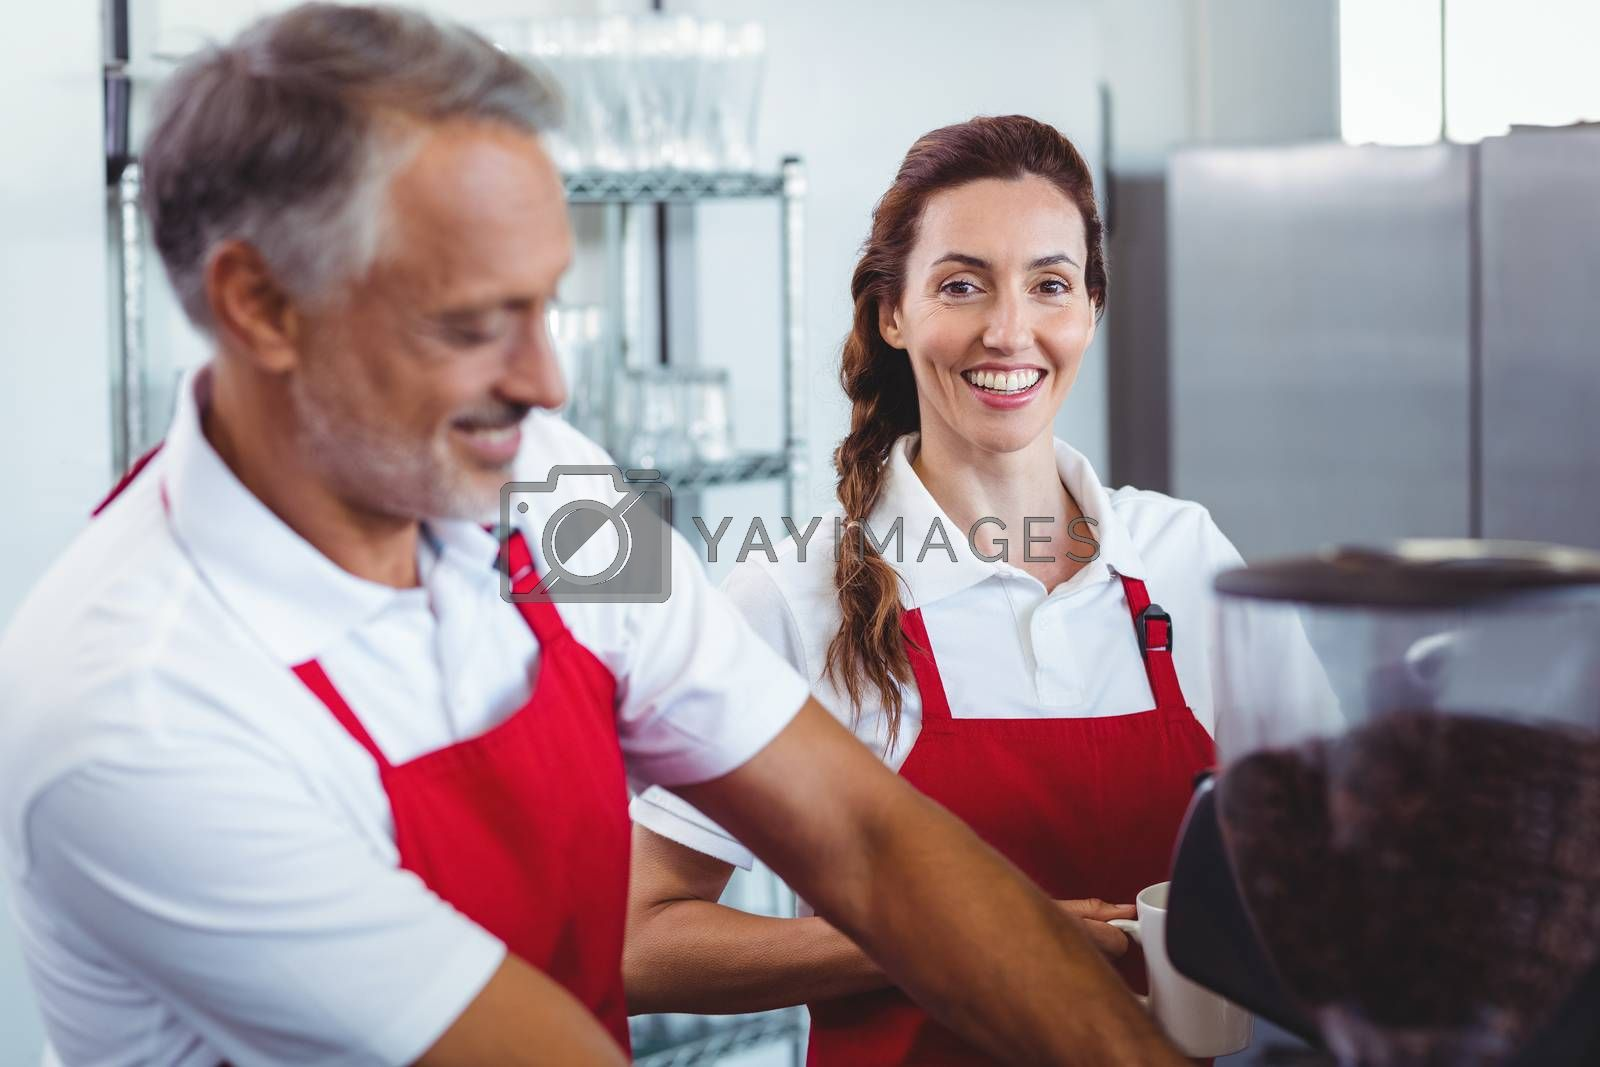 Royalty free image of Pretty barista looking at camera and holding a mug of coffee by Wavebreakmedia